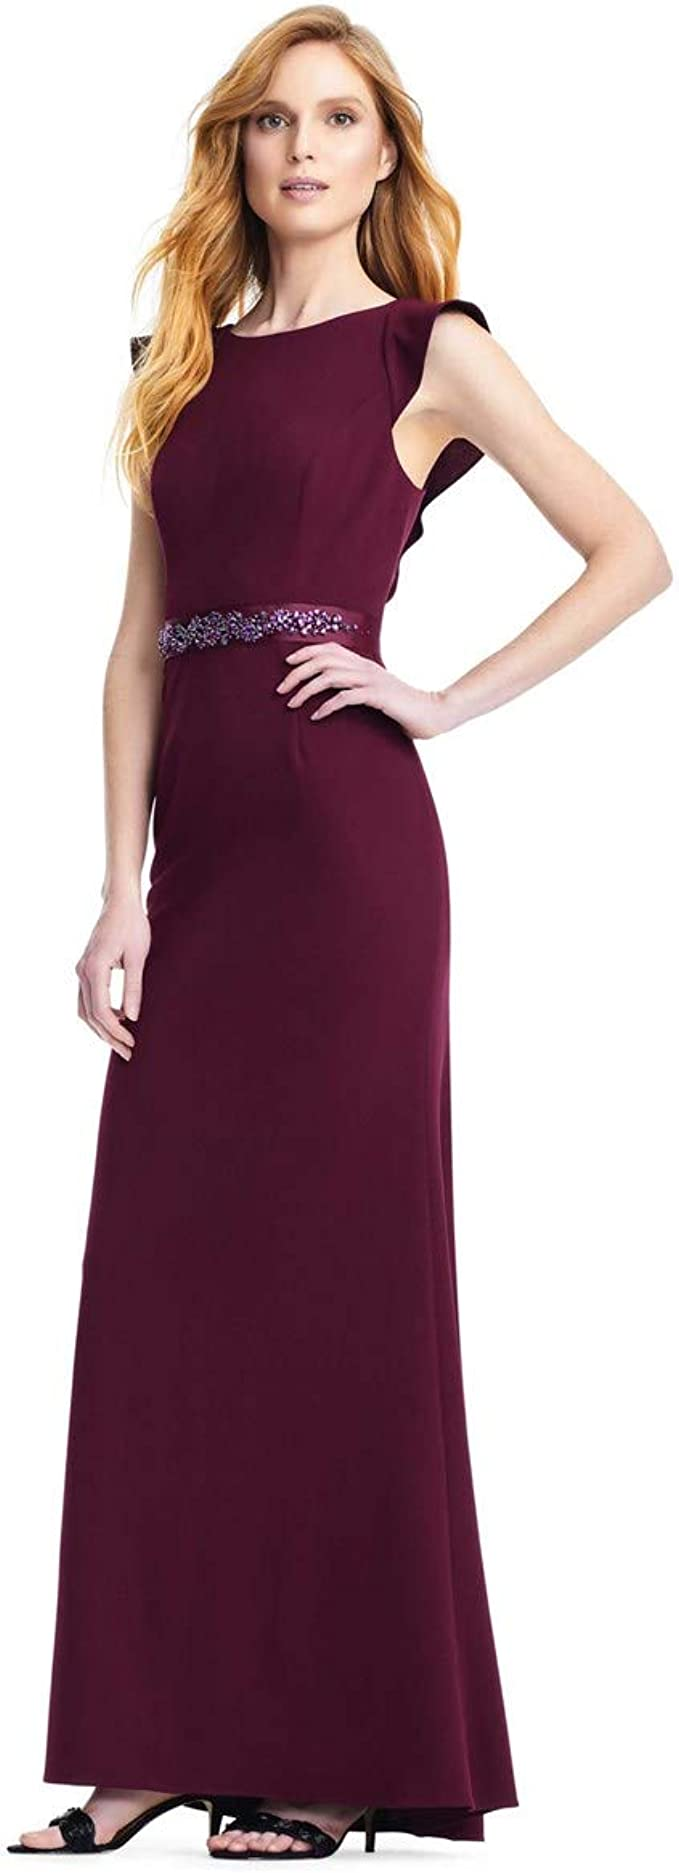 8 Adrianna Papell Sequin Lace Sleeveless Tulle Gown Black Cherry